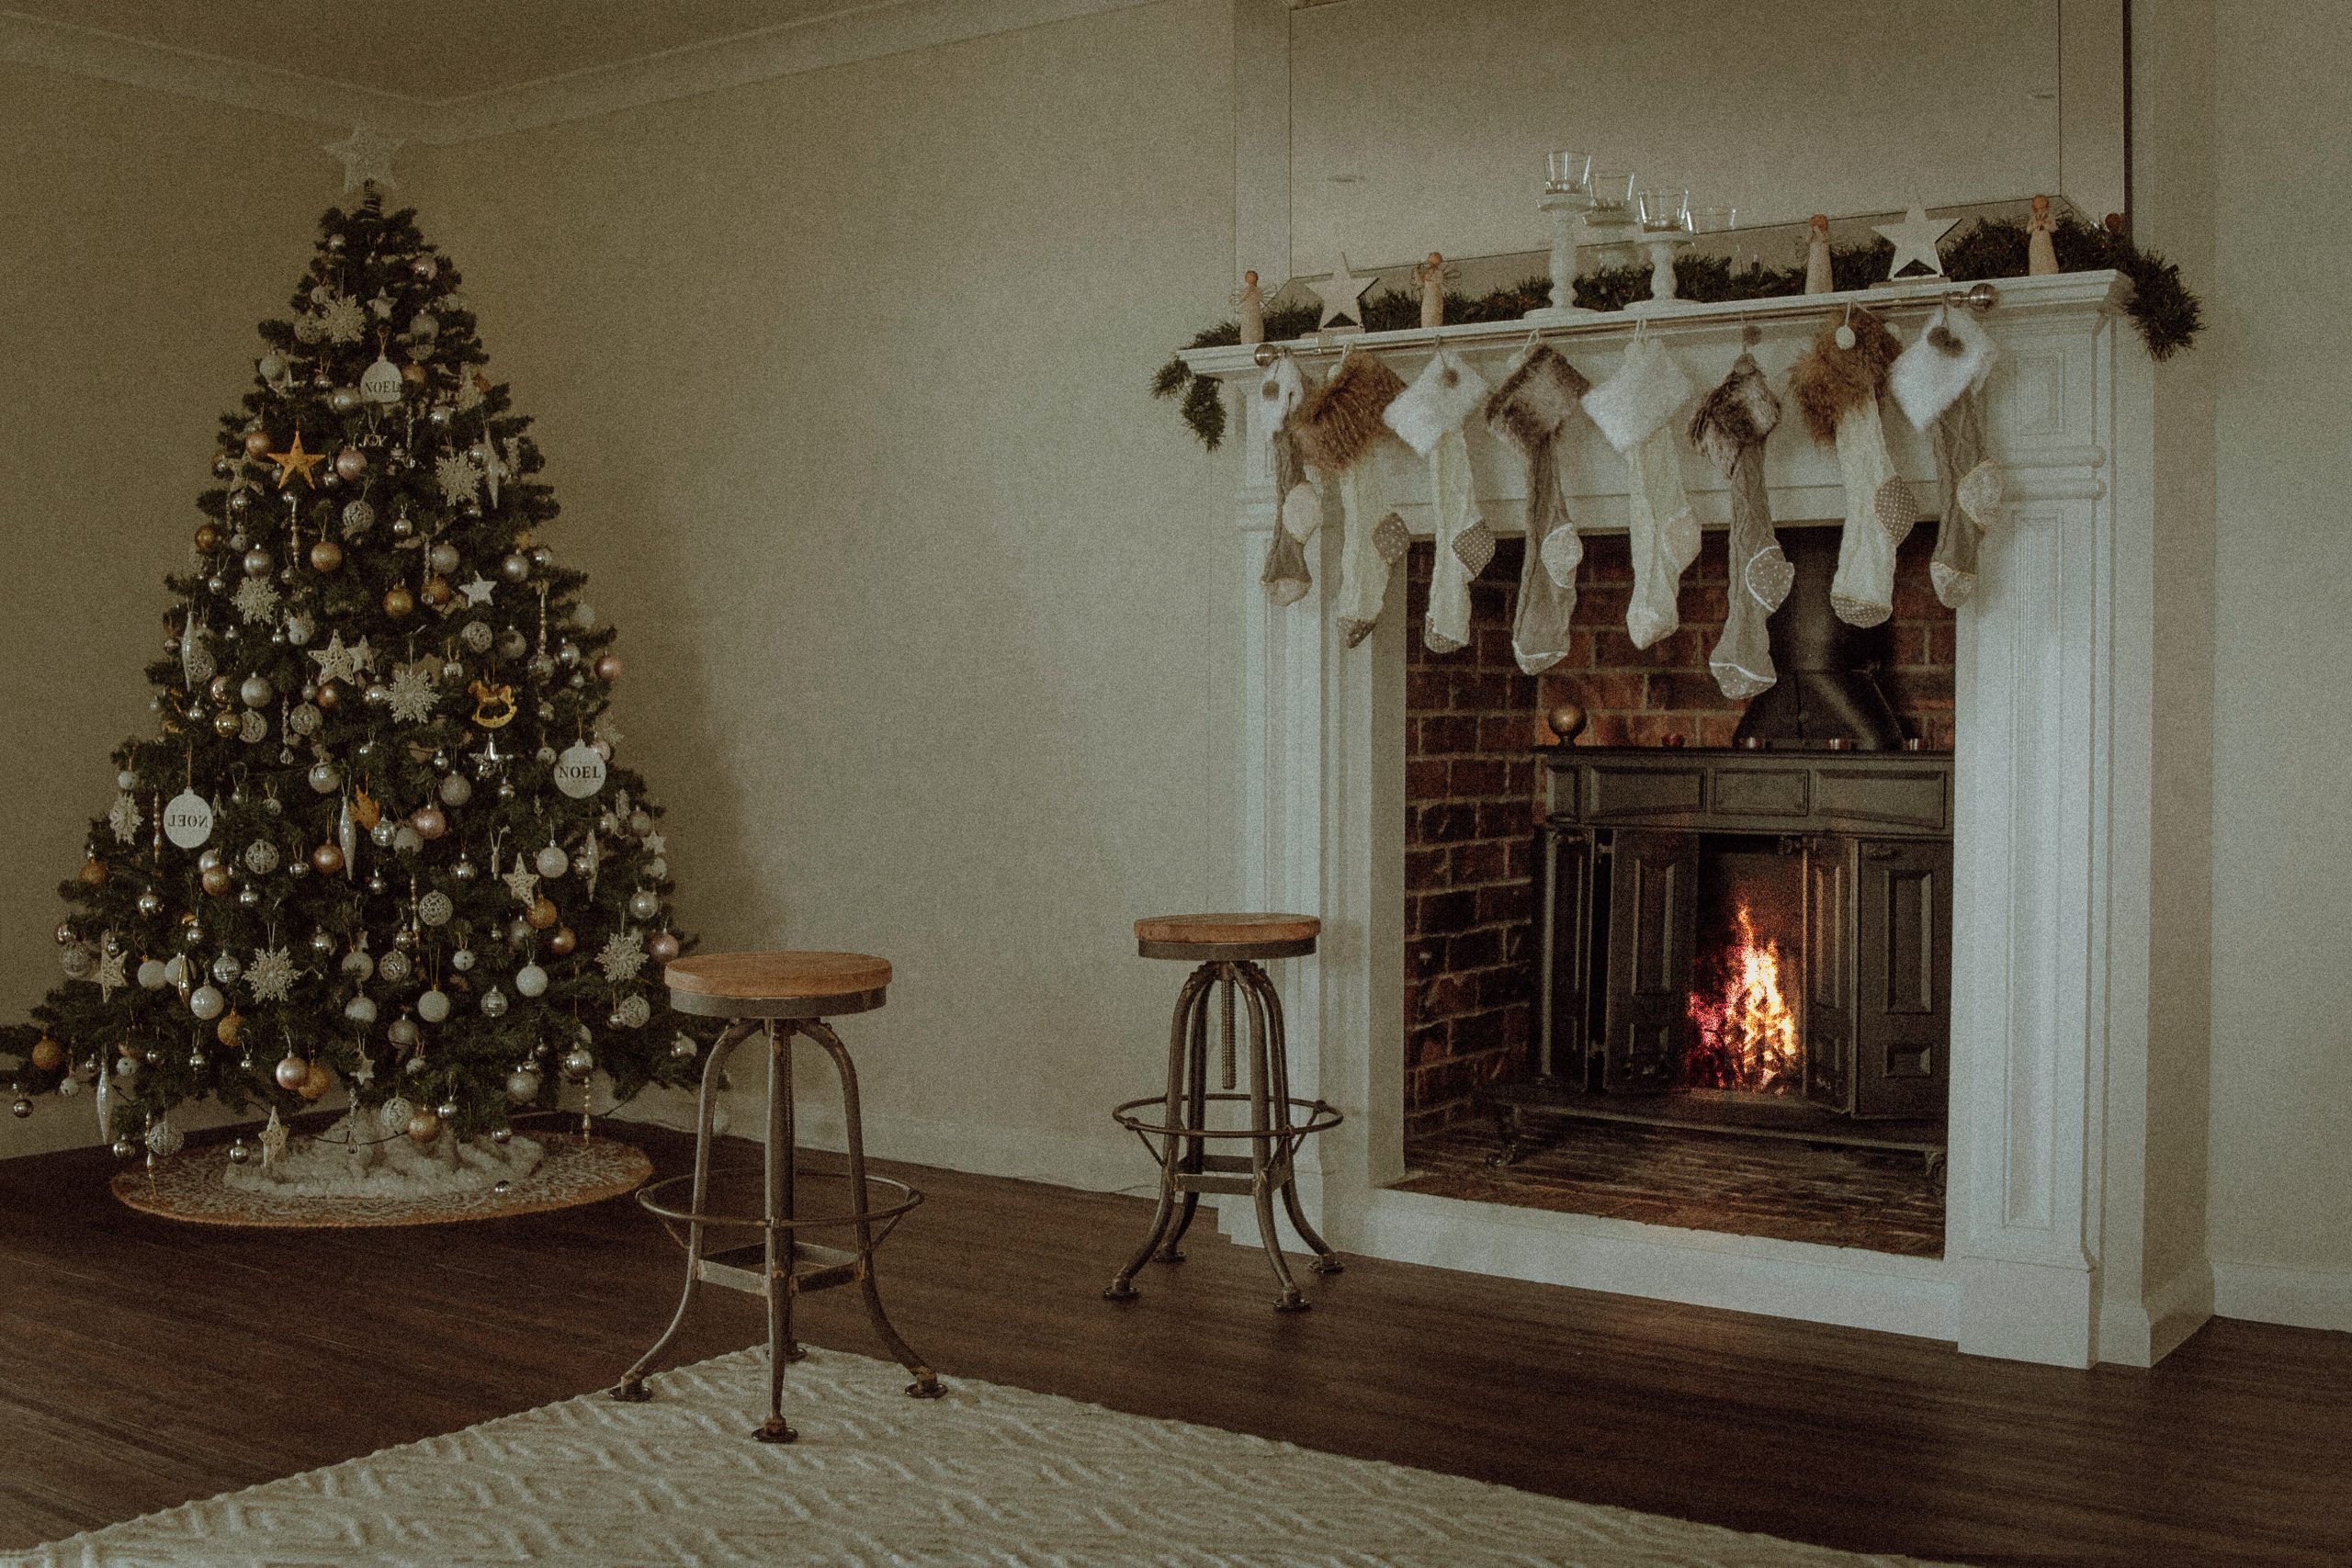 A Christmas tree featuring white decorative elements in a white room with a fireplace.